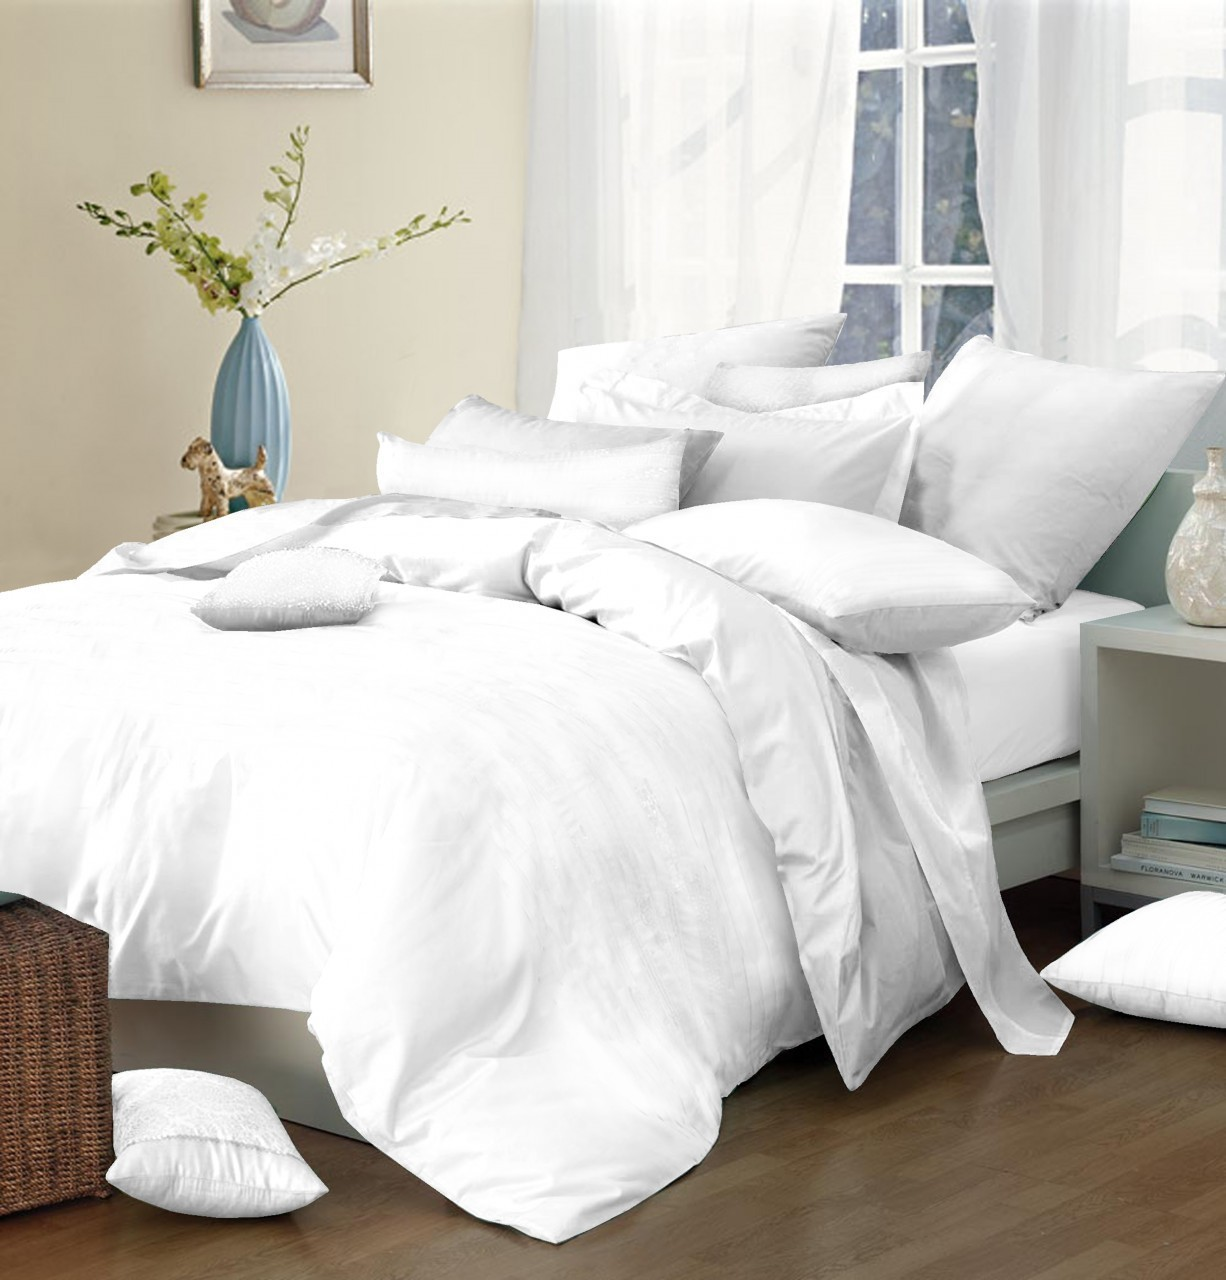 Cute cotton percale sheets with Amazing Combine Color Sheets Ideas